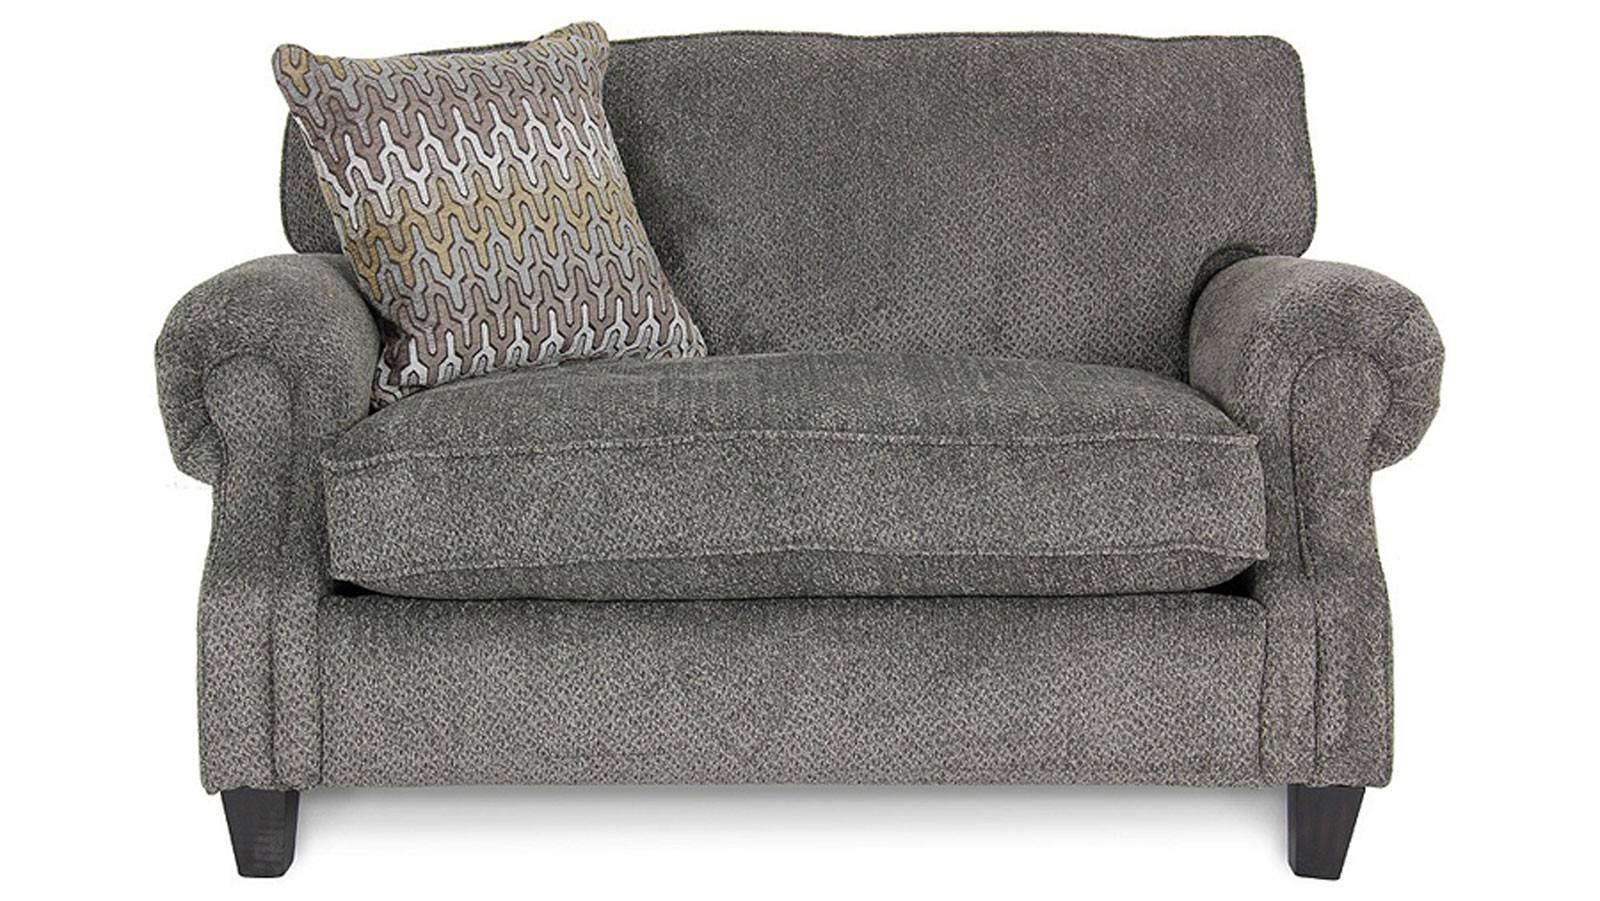 Living Room Sleeper Sofas | Gallery Furniture in Comfortable Sofas and Chairs (Image 11 of 30)